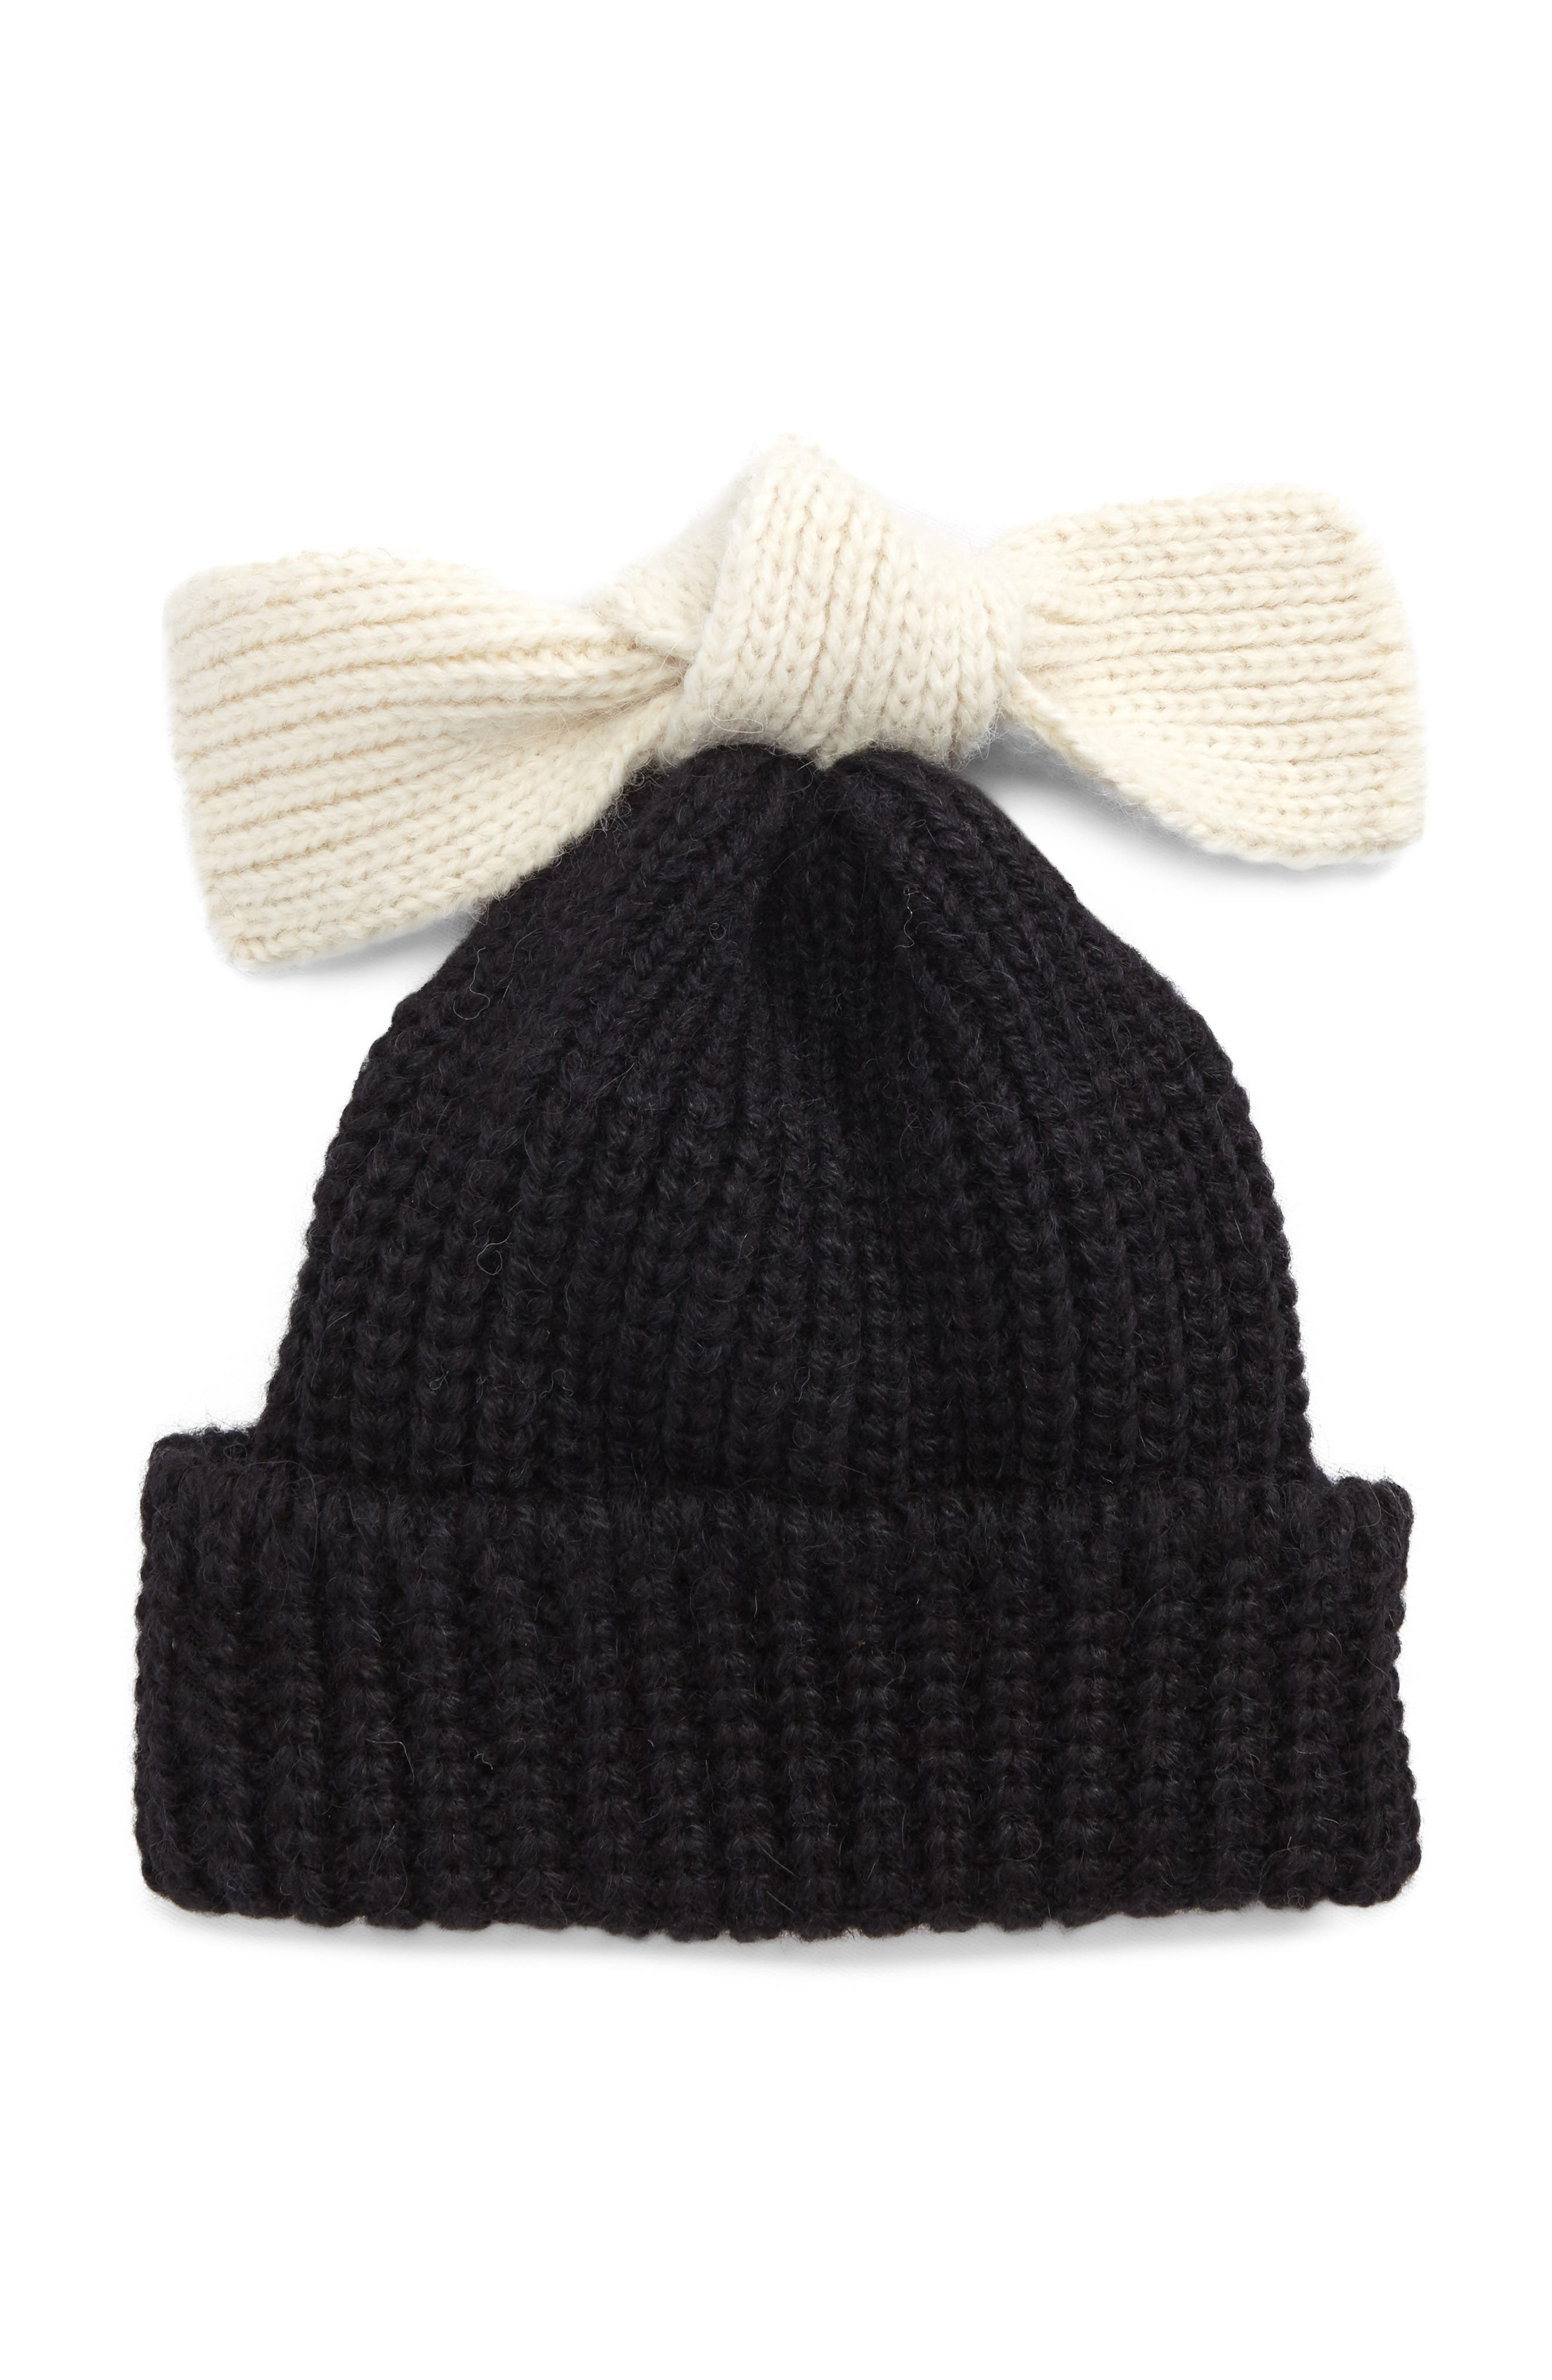 Bow Tie Beanie,                             Main thumbnail 1, color,                             Black White